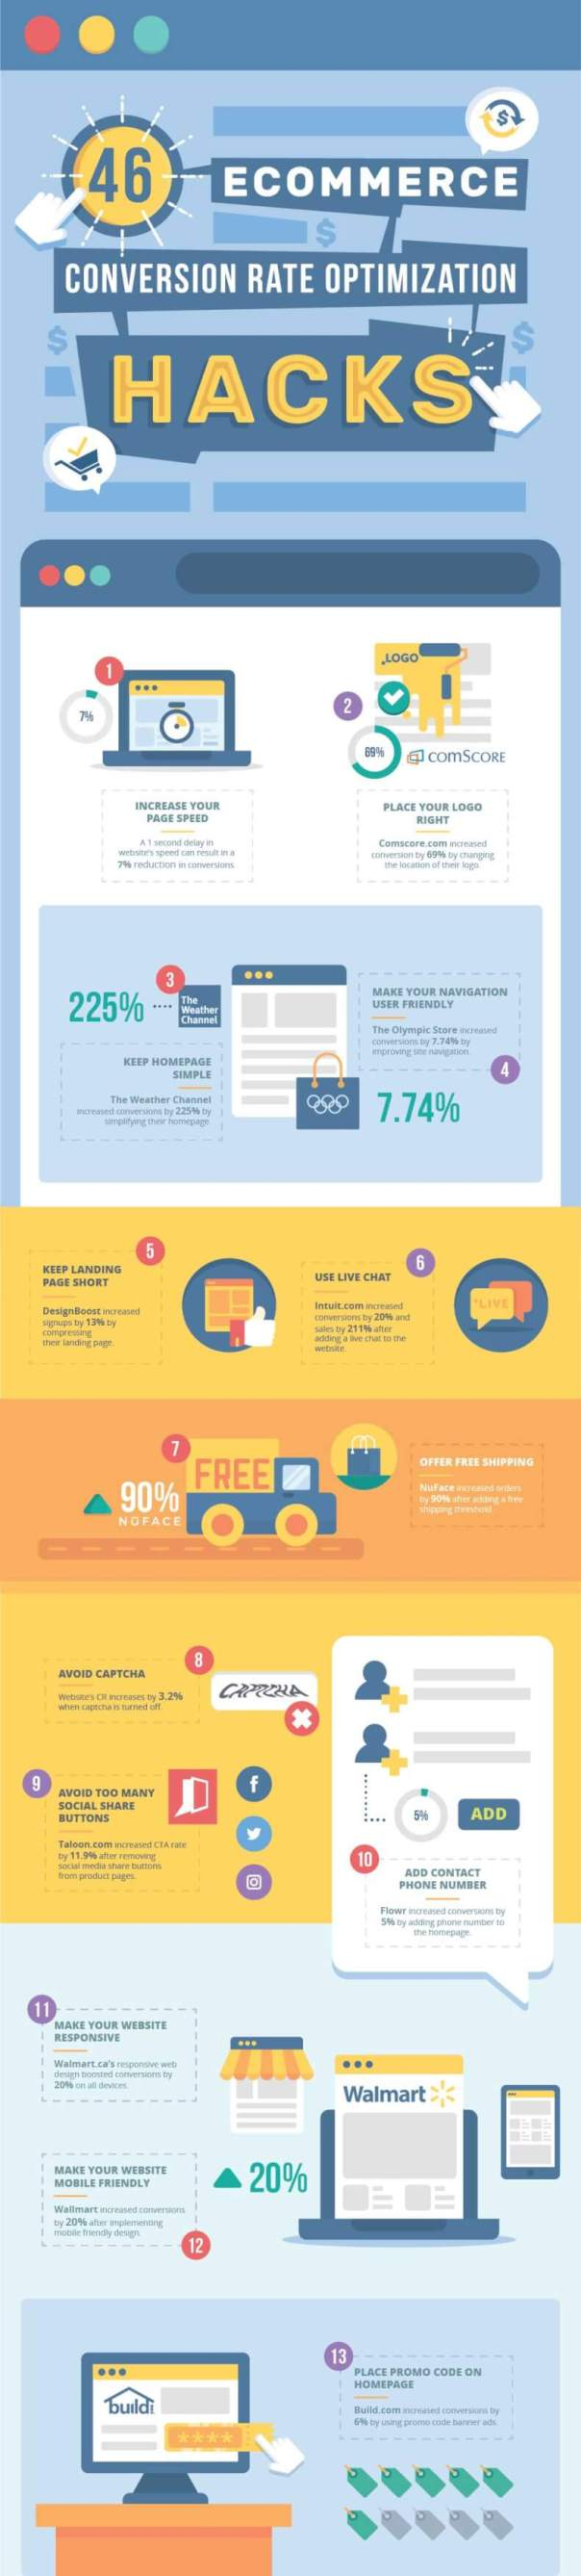 infographic-How-to-Optimize-your-Site-for-Conversions_01.jpg